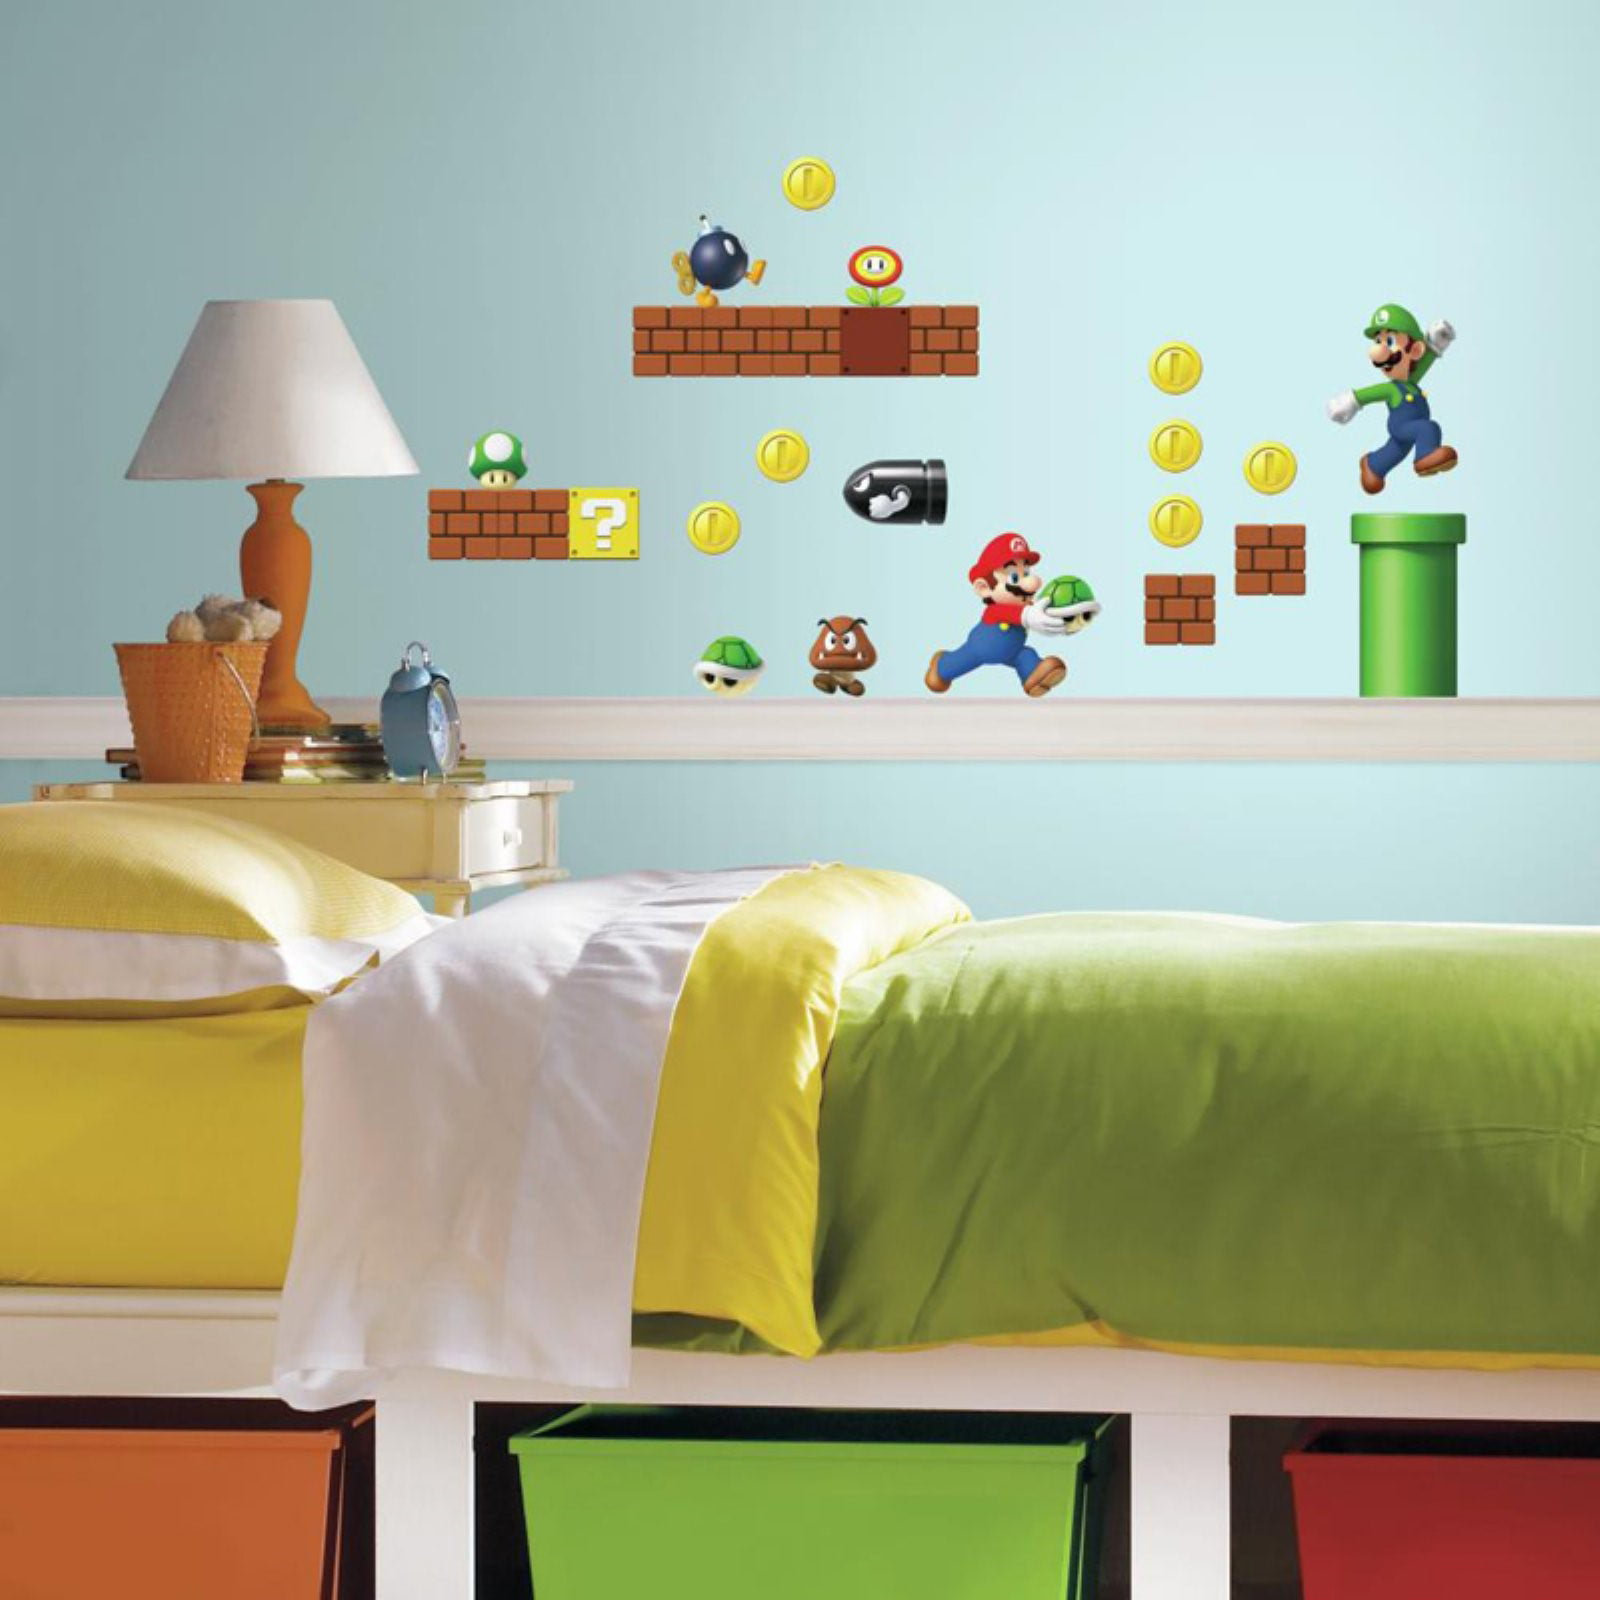 RoomMates Nintendo Super Mario Build a Scene Peel and Stick Wall Decals -  Walmart.com